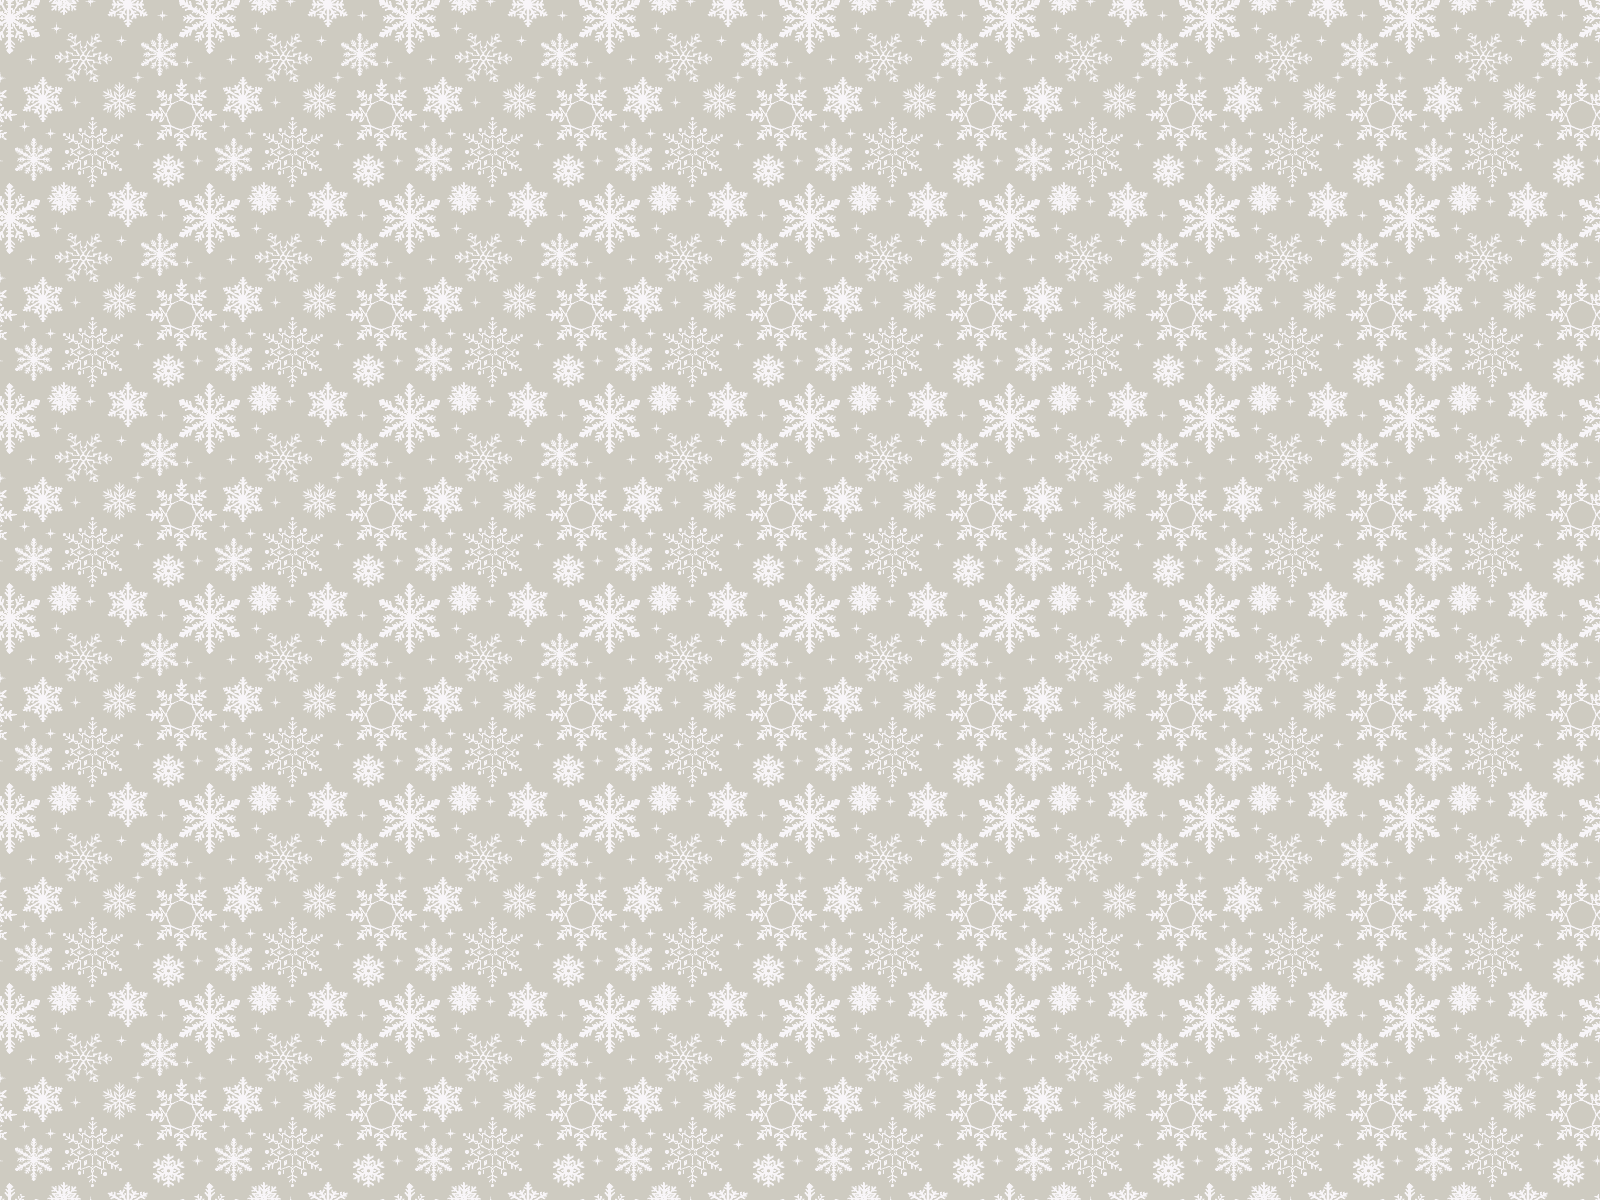 Wonderful Wallpaper Horse Vintage - tumblr_static_silver-snow-flakes-wrapping-papper-pattern-2  2018_603489.png